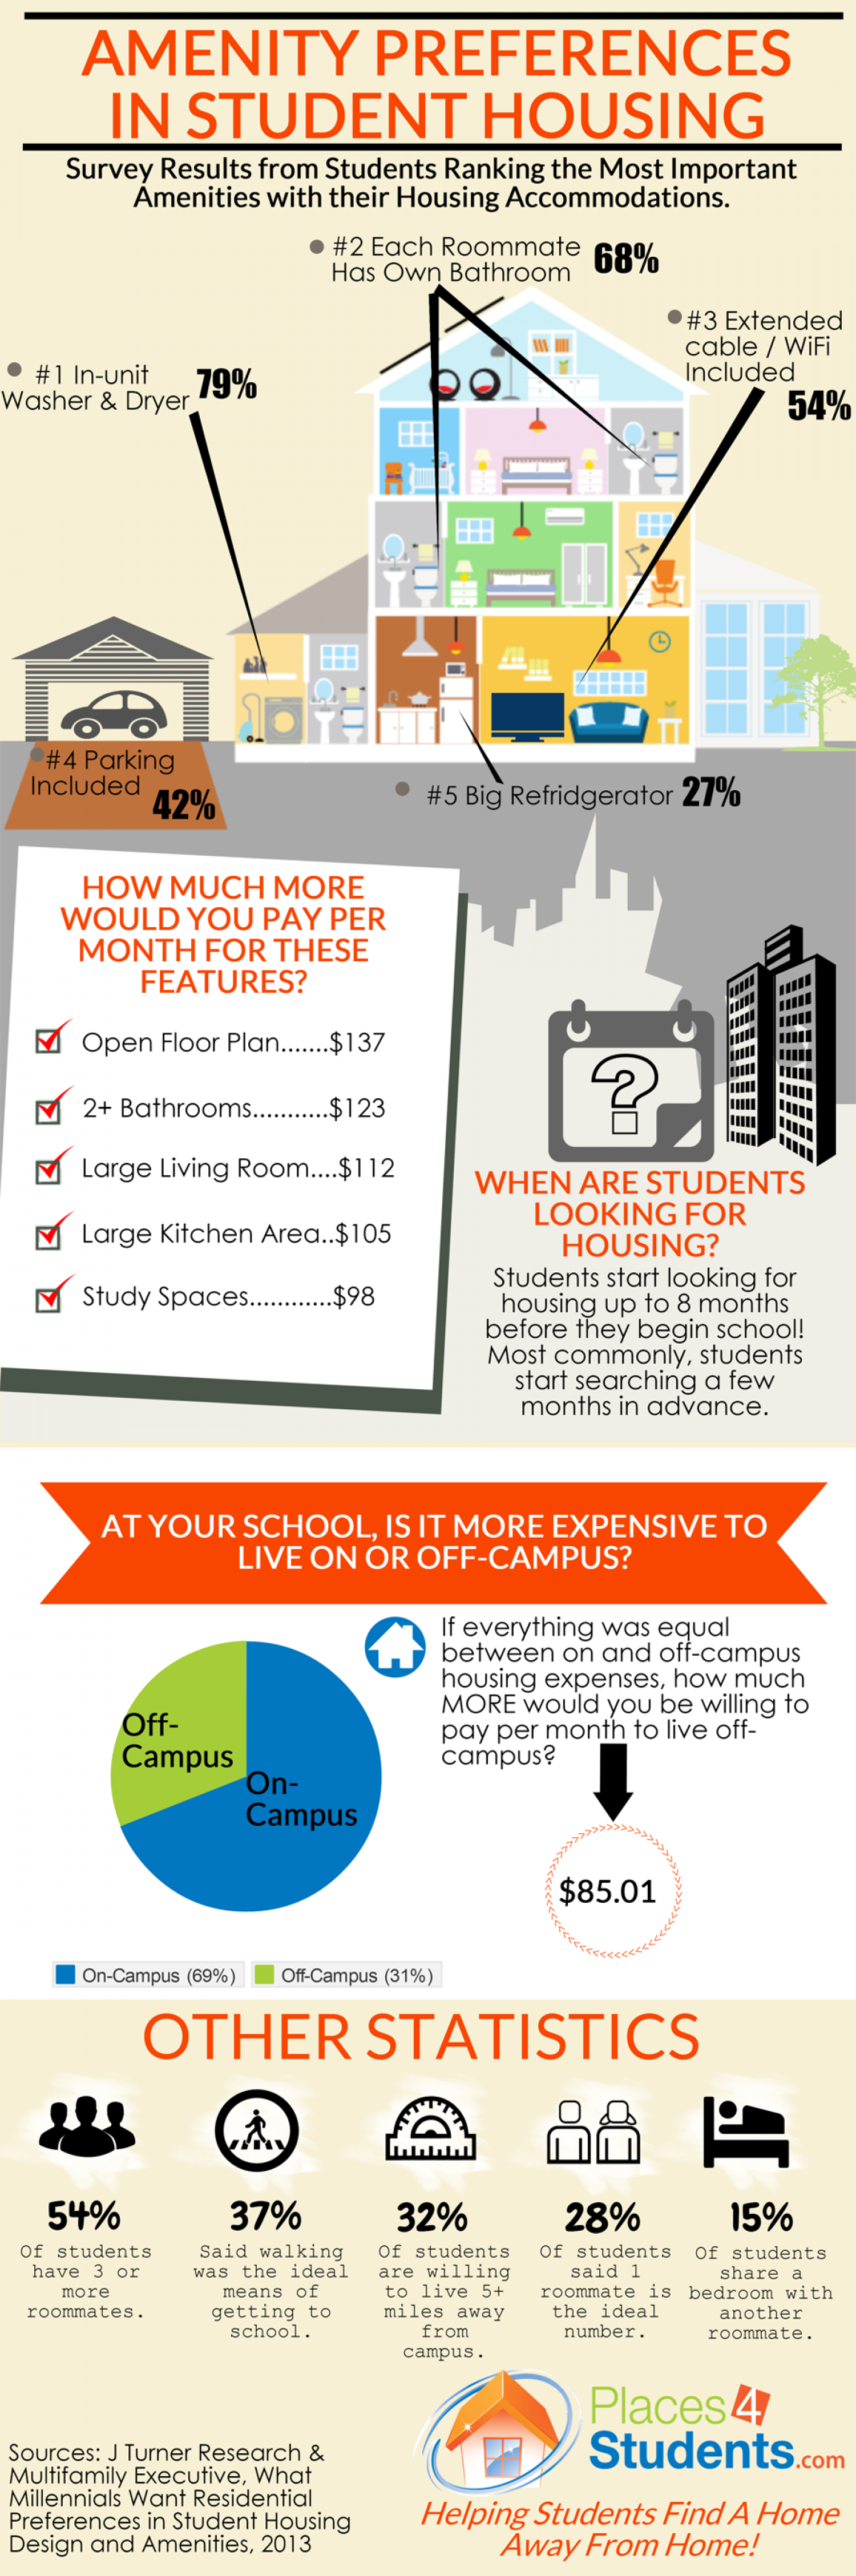 Amenity Preferences in Student Housing Infographic